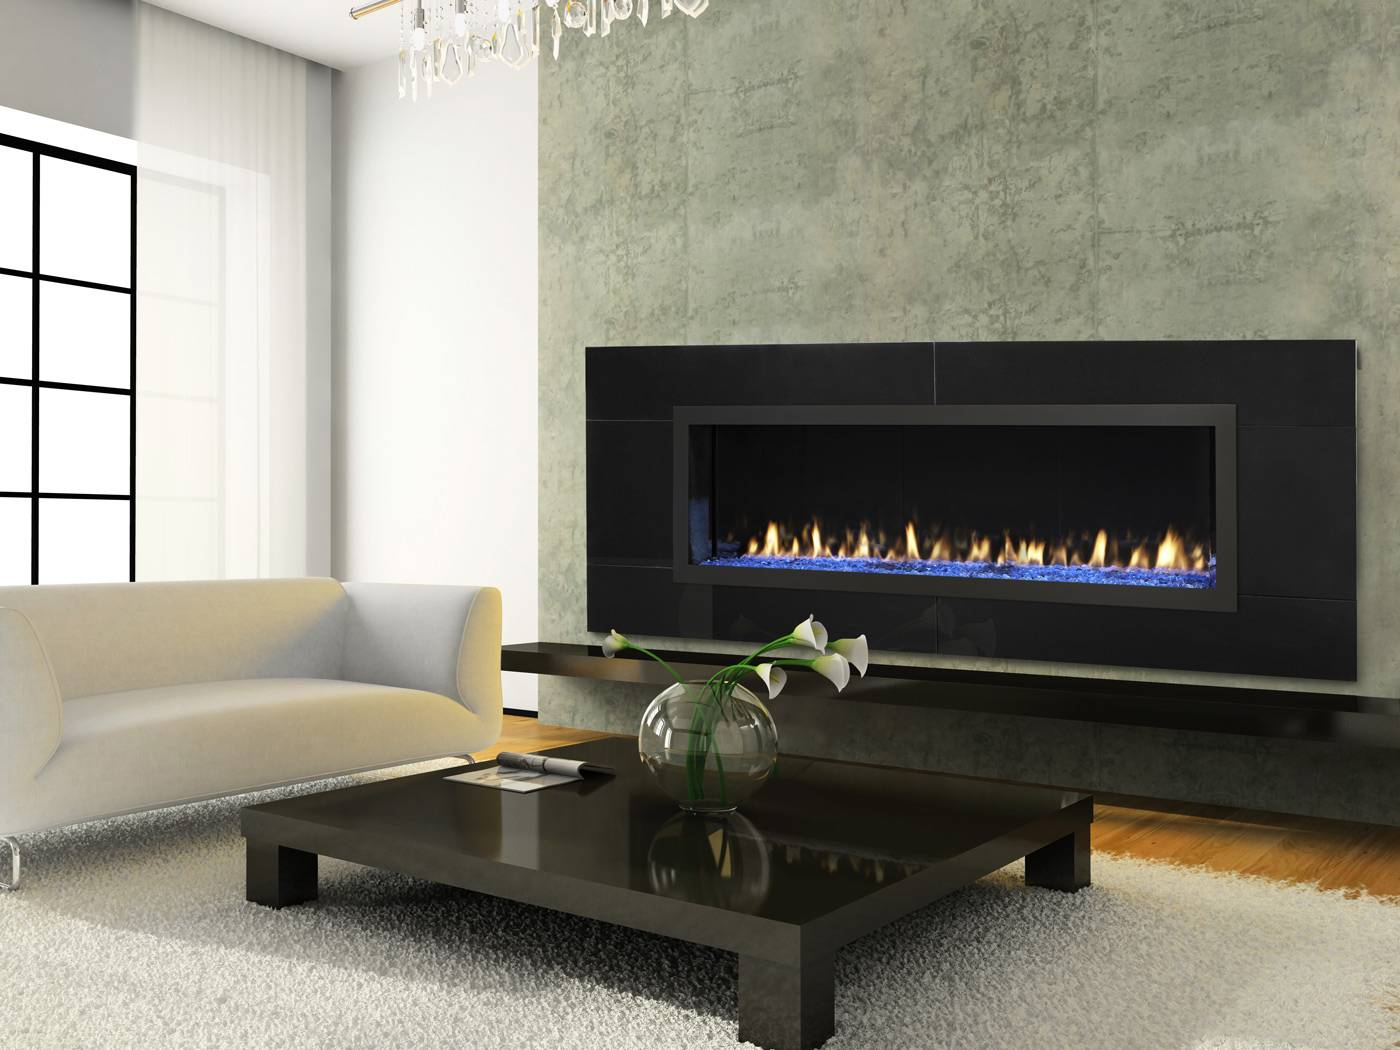 Modern Fireplaces Gas Fireplaces Hot Tubs Fireplaces Patio Furniture